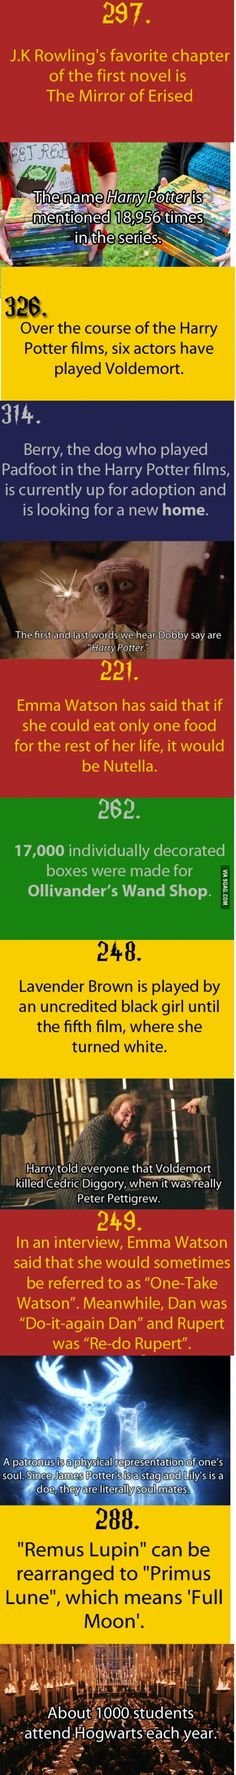 Just Some Harry Potter Facts Part 1  The James and Lily part made me tear up!